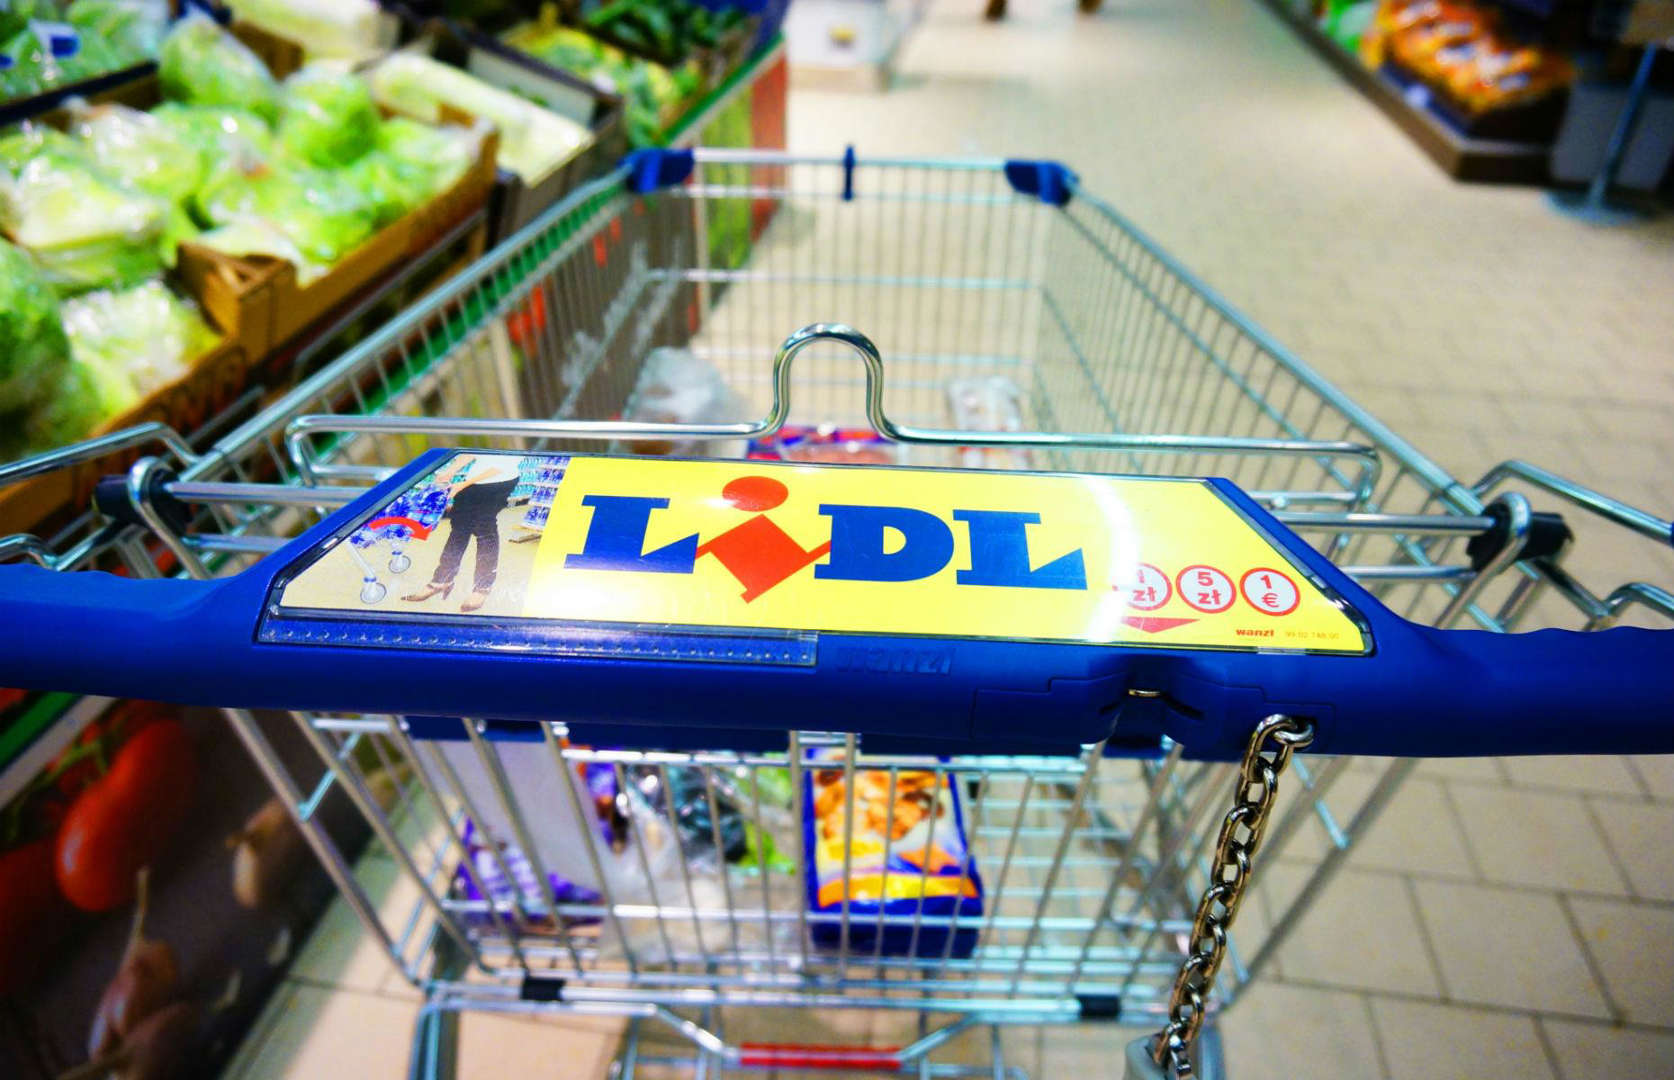 Lidl: the amazing rise of the German discounter taking over